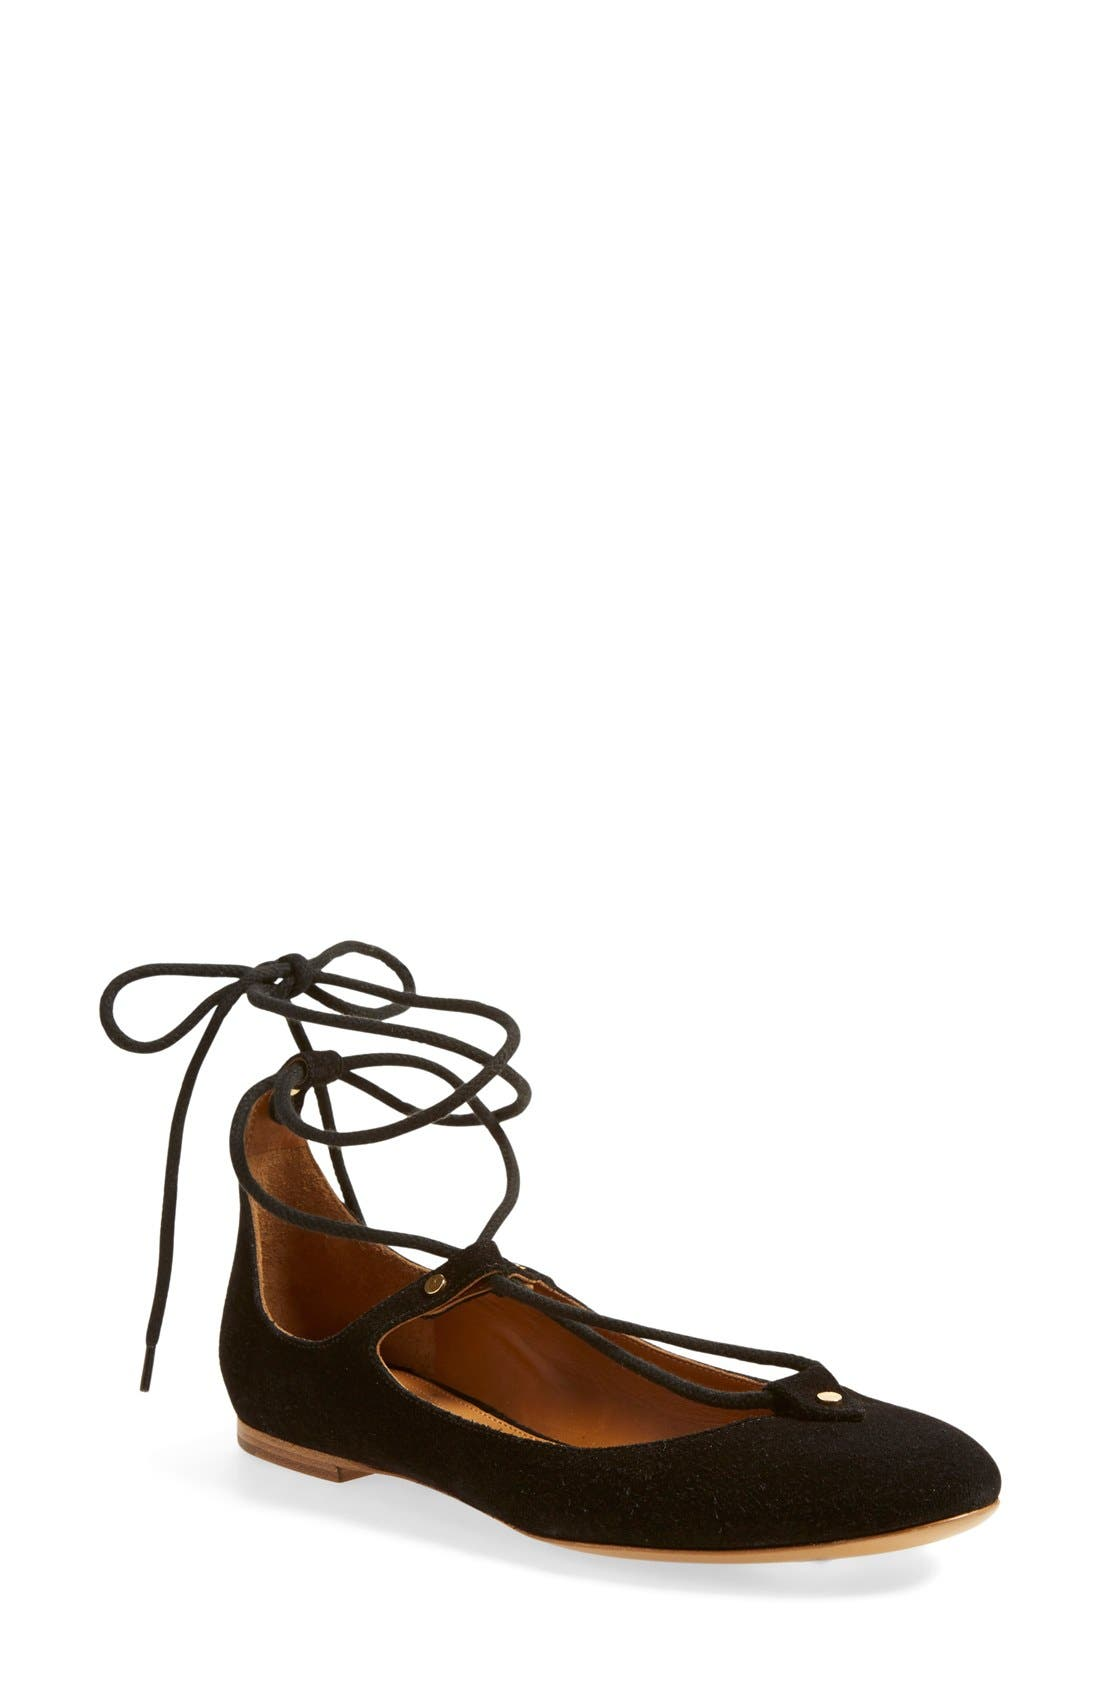 Alternate Image 1 Selected - Chloé 'Foster' Lace-Up Ballet Flat (Women)